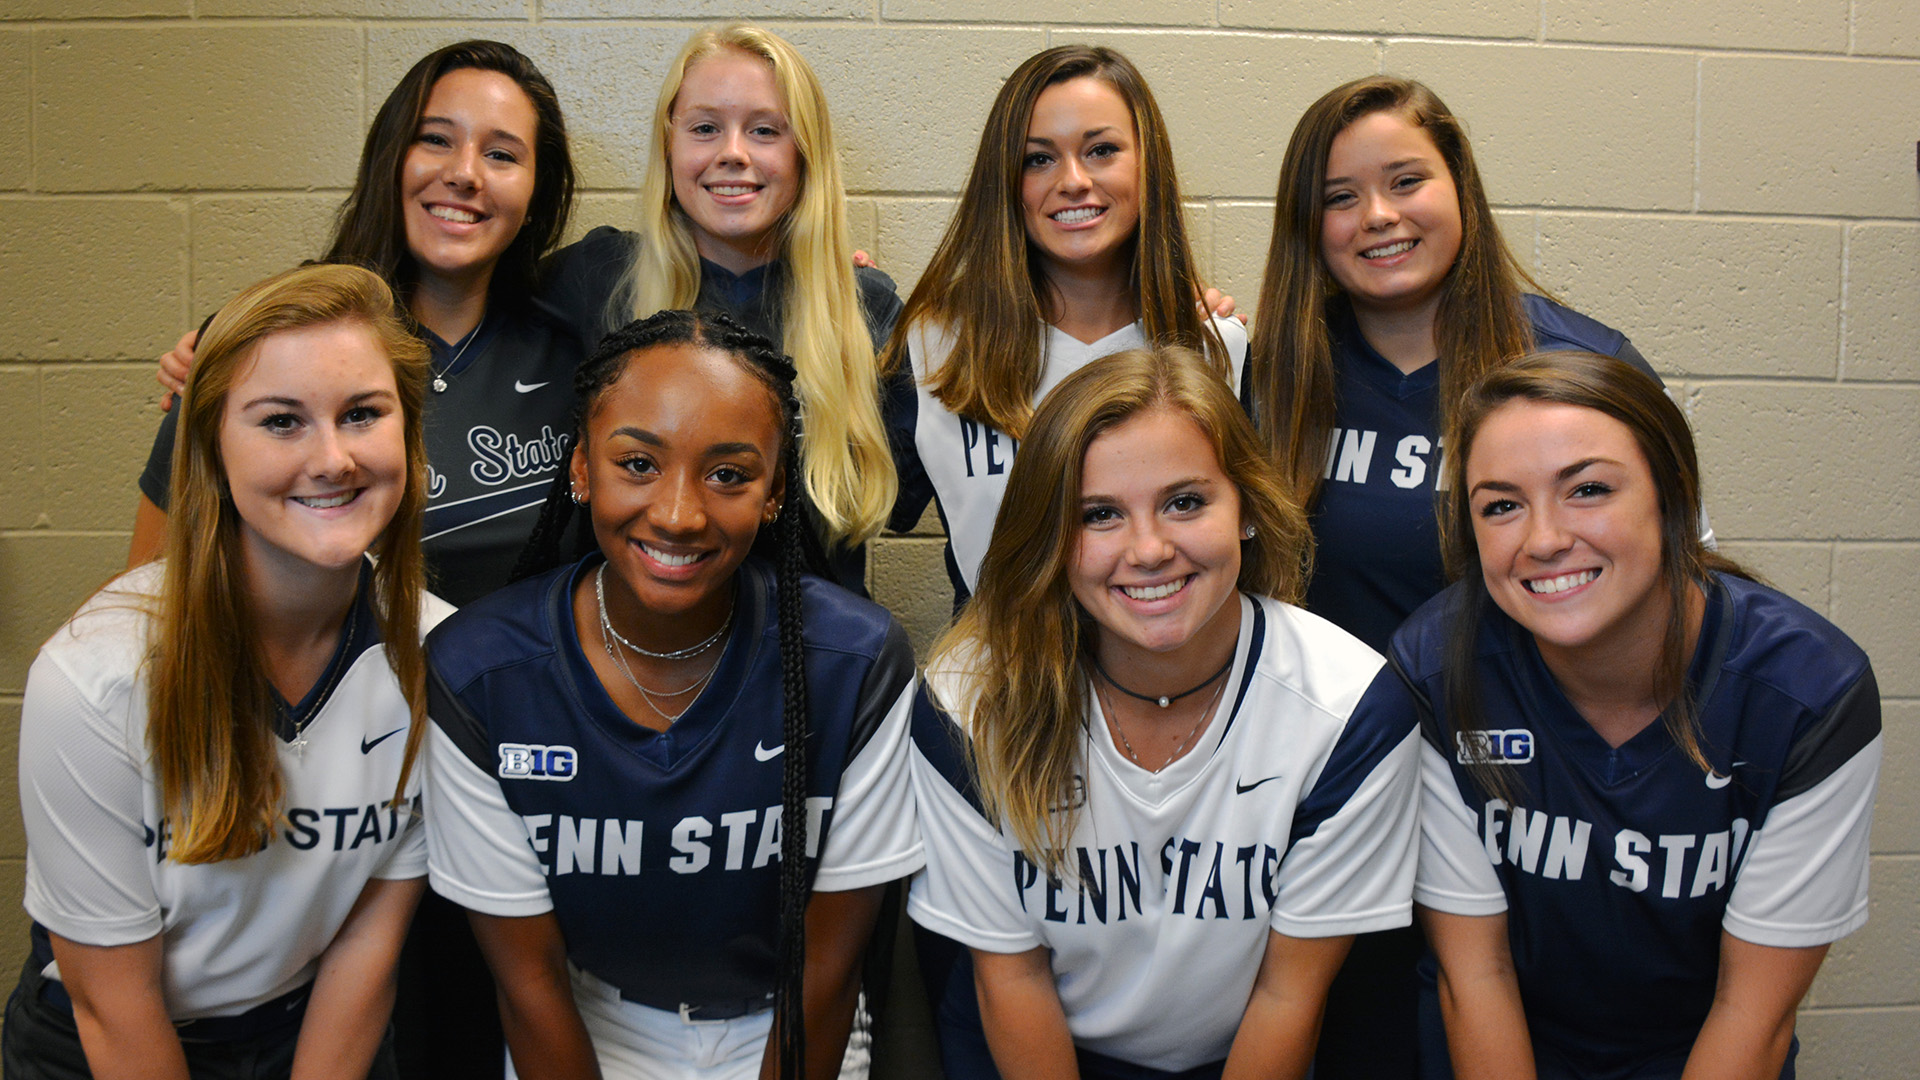 Softball Welcomes Eight in 2019 Signing Class - Penn State